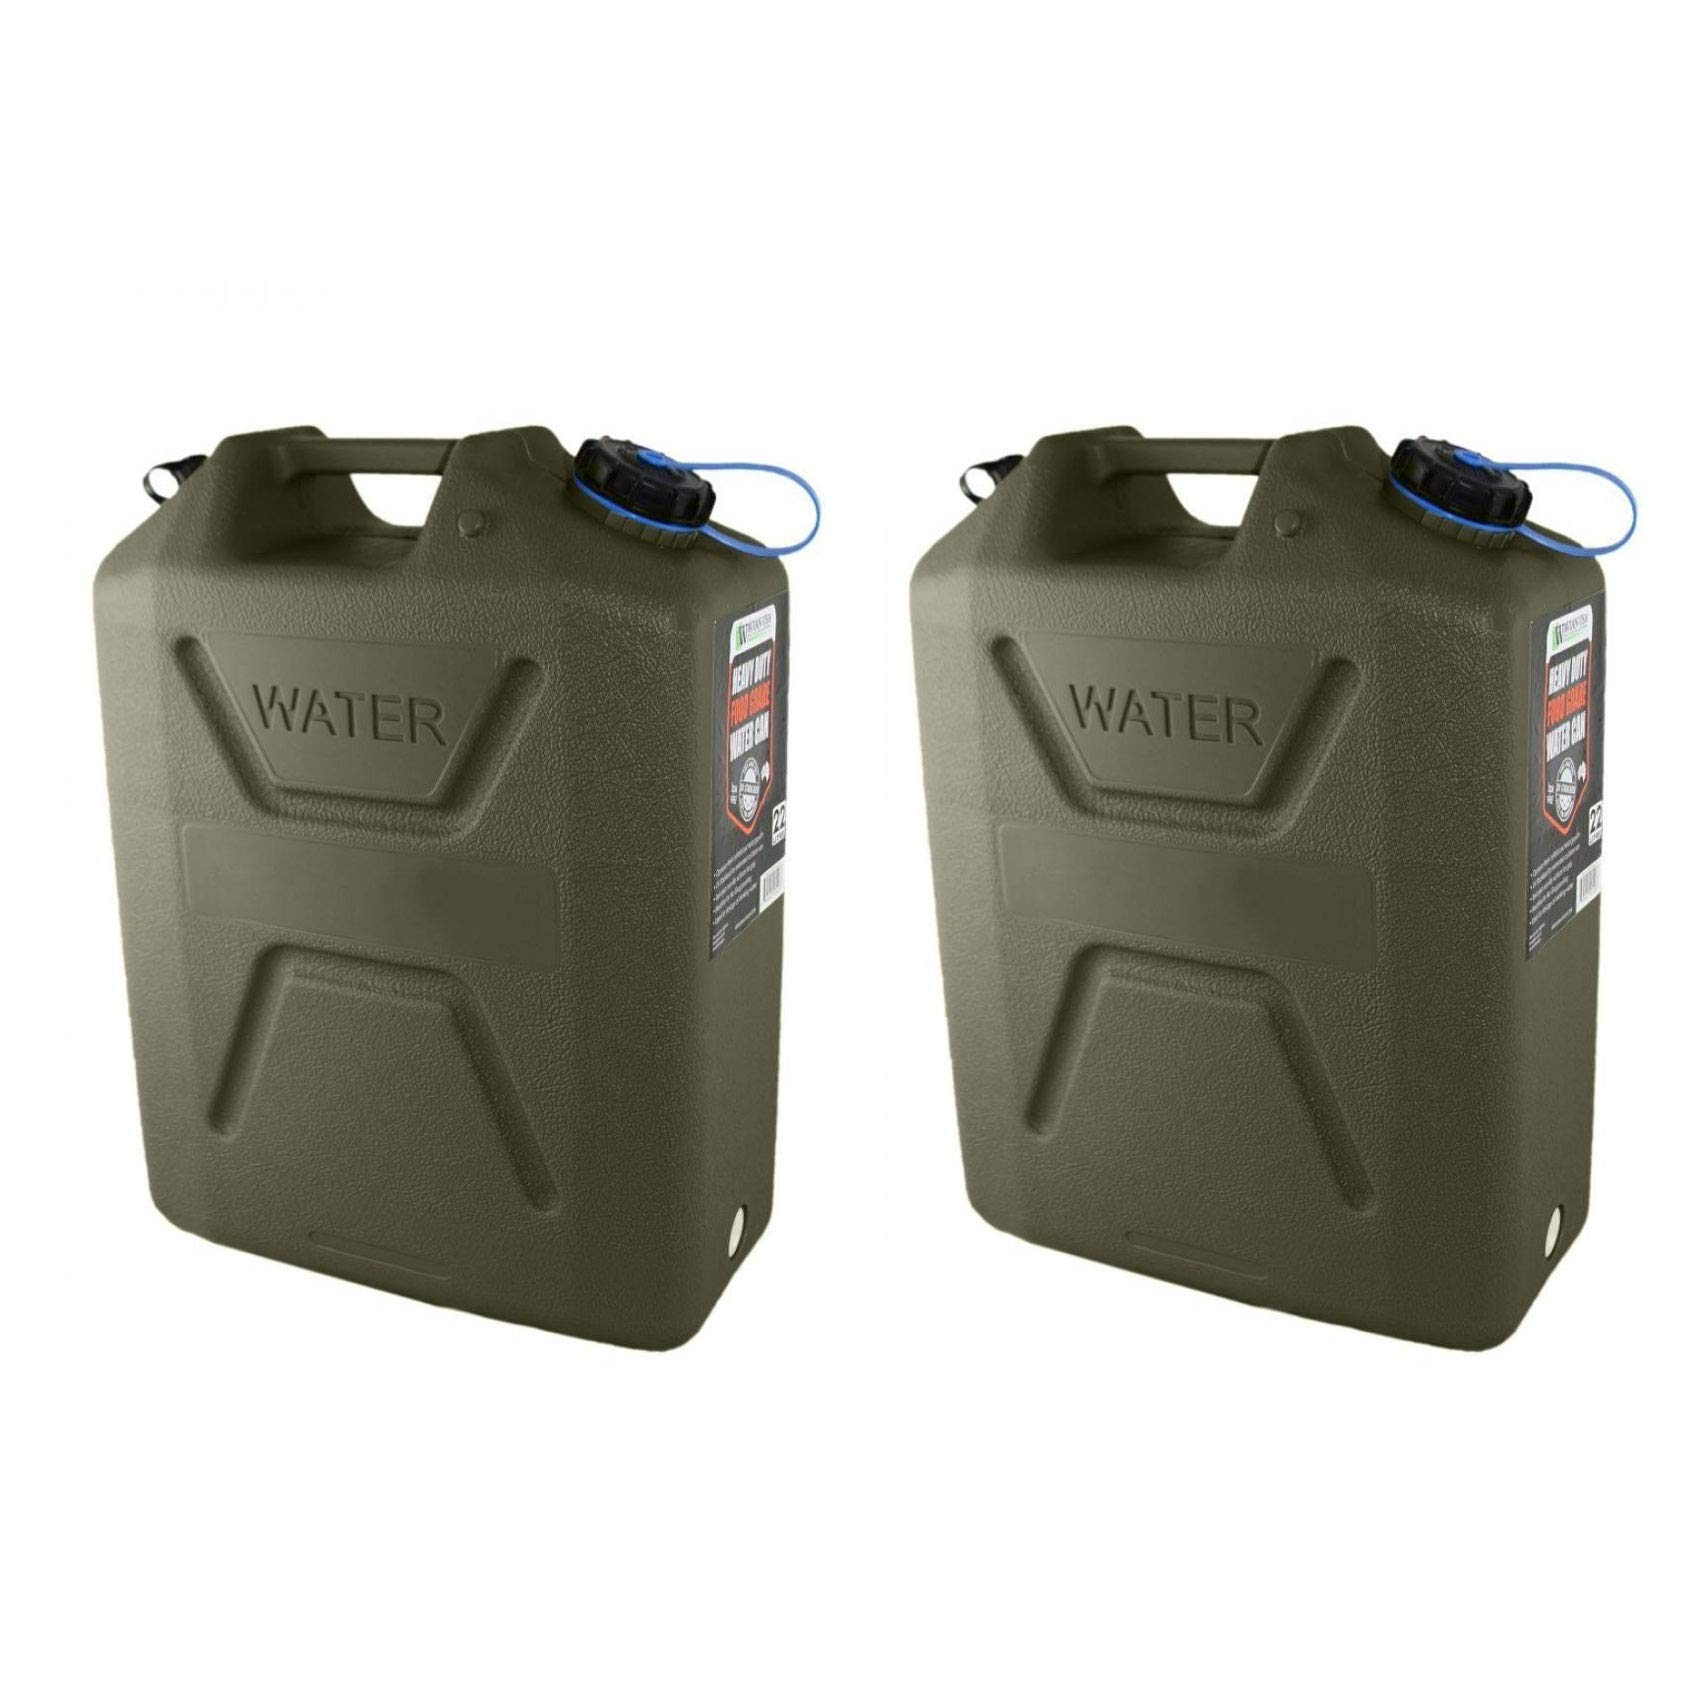 Wavian USA 5 Gallon Plastic Water Jug Can with Easy Pour Spout, Green (2 Pack) by Wavian USA Jerry Cans